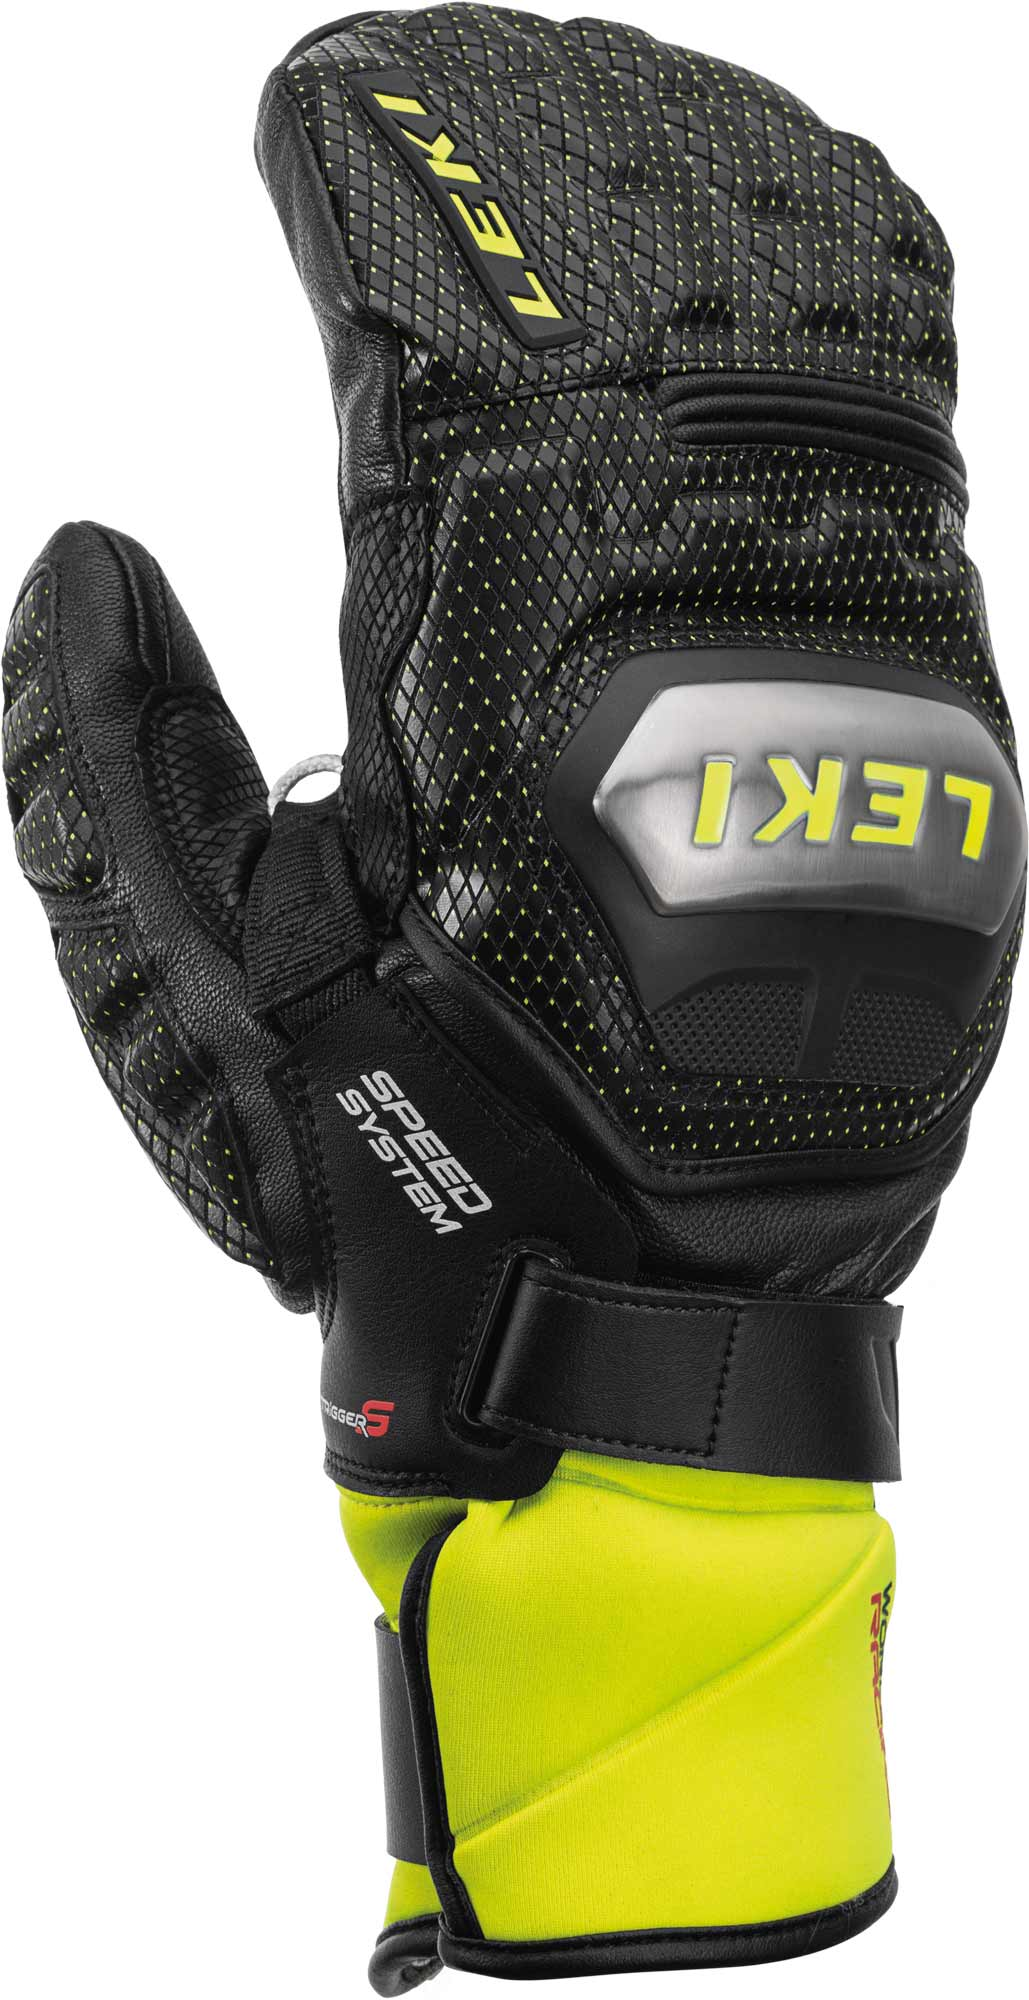 Leki Worldcup Race TI S Speed System Mitten - Fausthandschuhe mit Trigger S